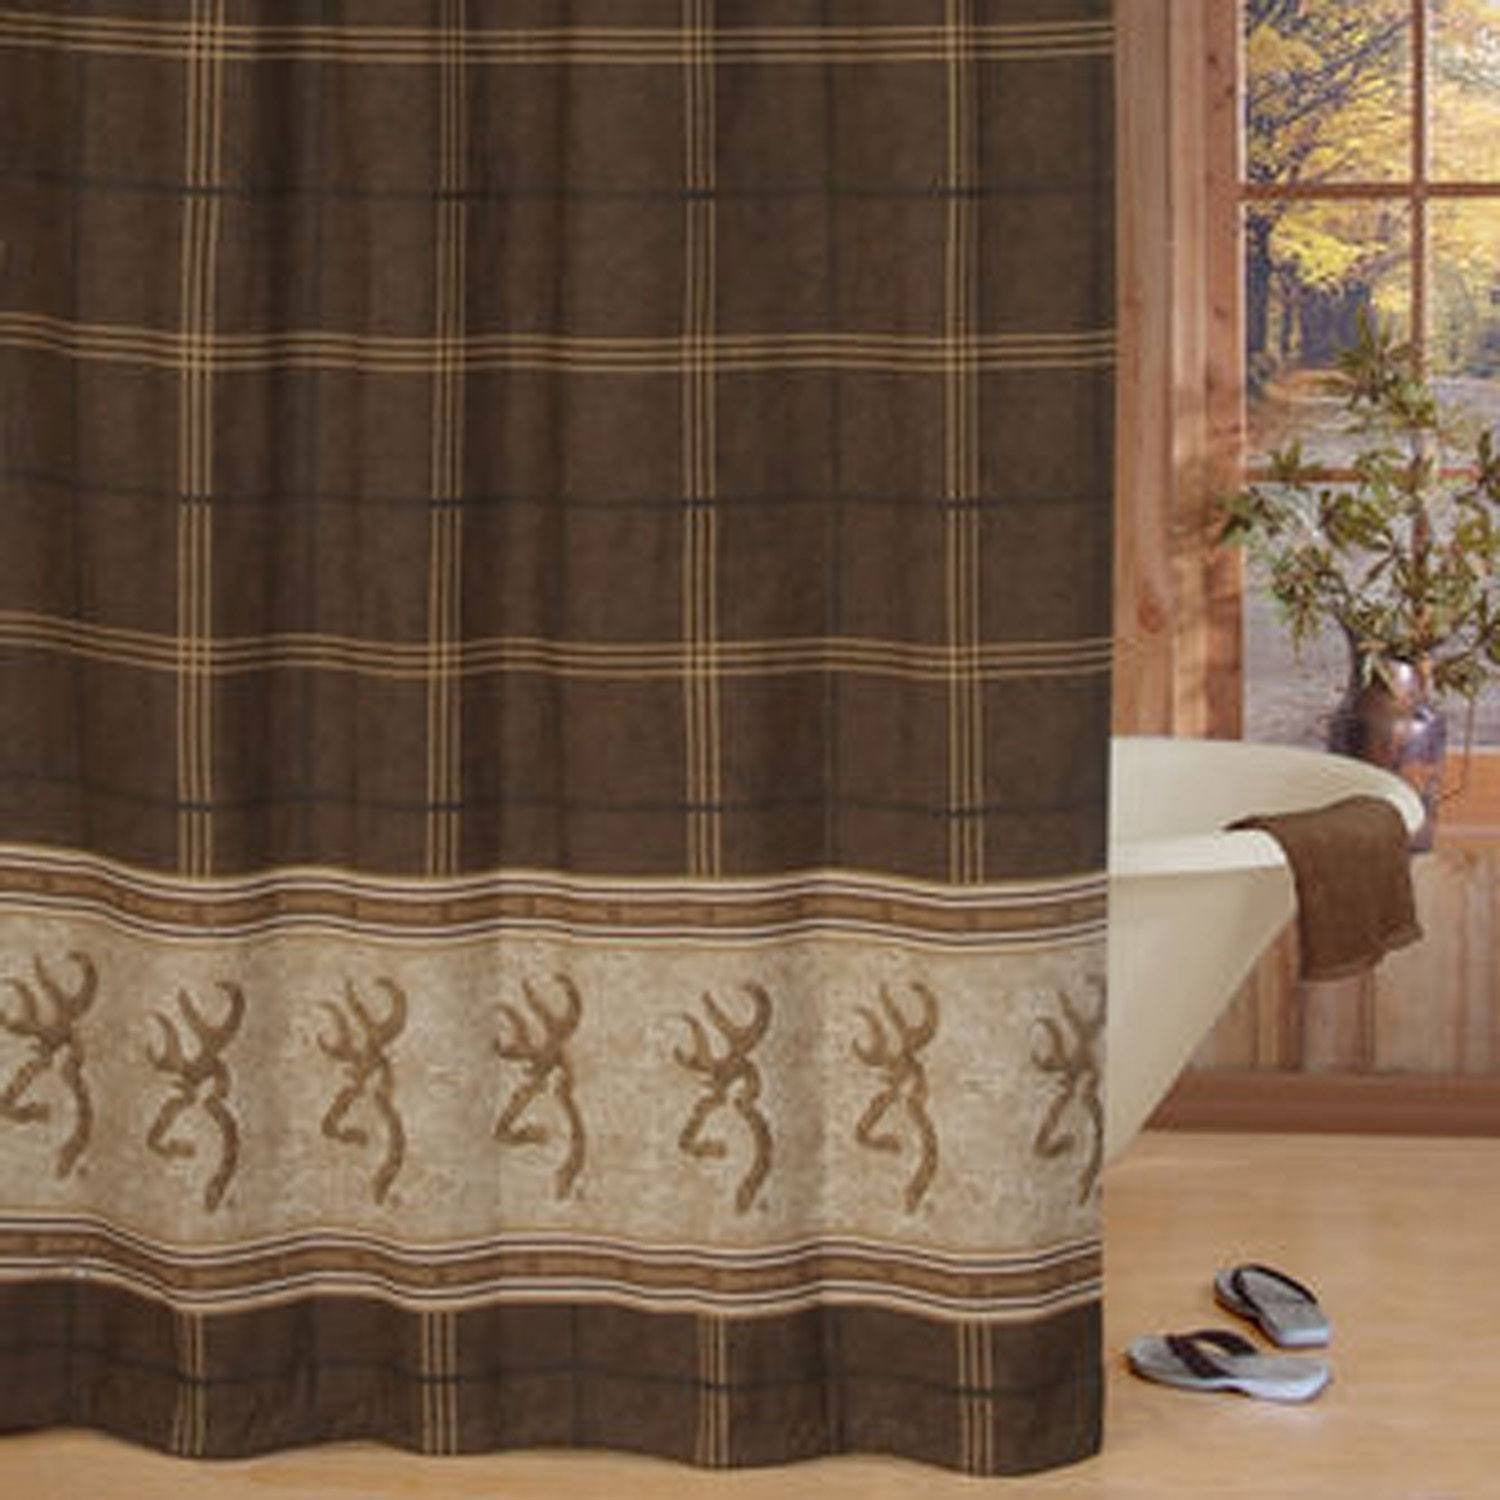 Browning Buckmark Towel And Shower Curtain Set